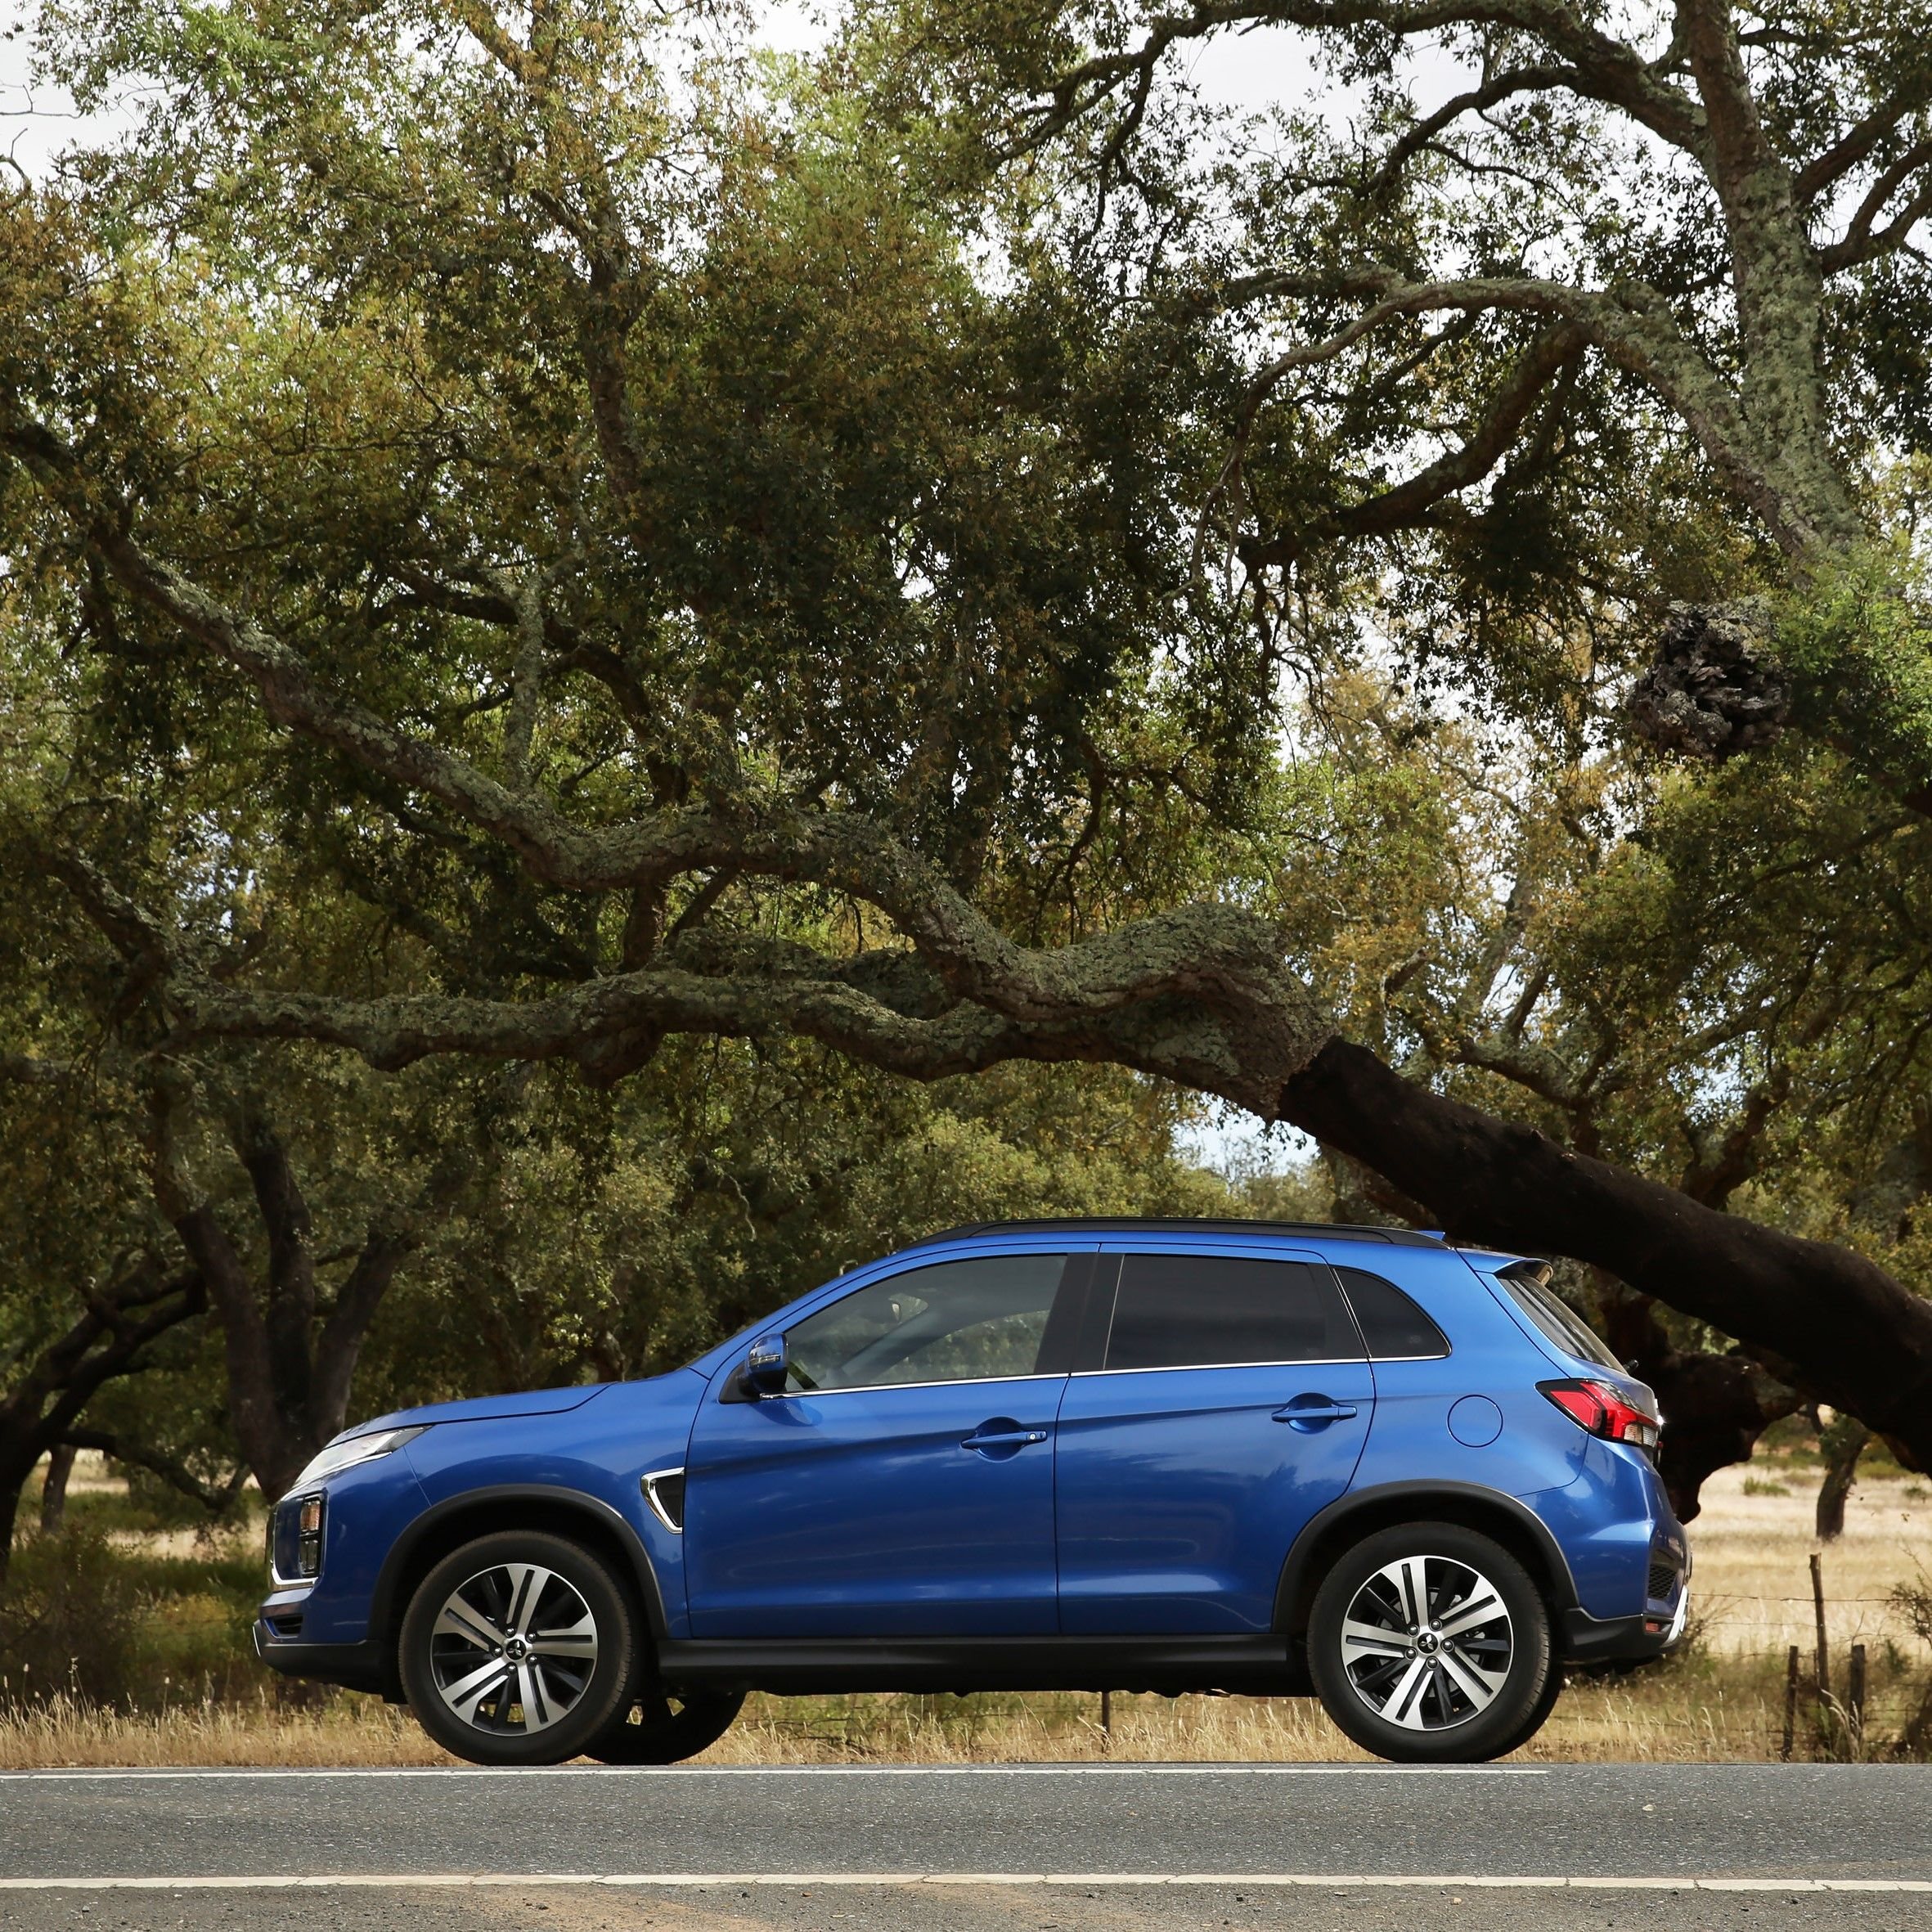 Mitsubishi Asx 4wd: With 4WD The New #ASX Is Prepared For Any Adventure You